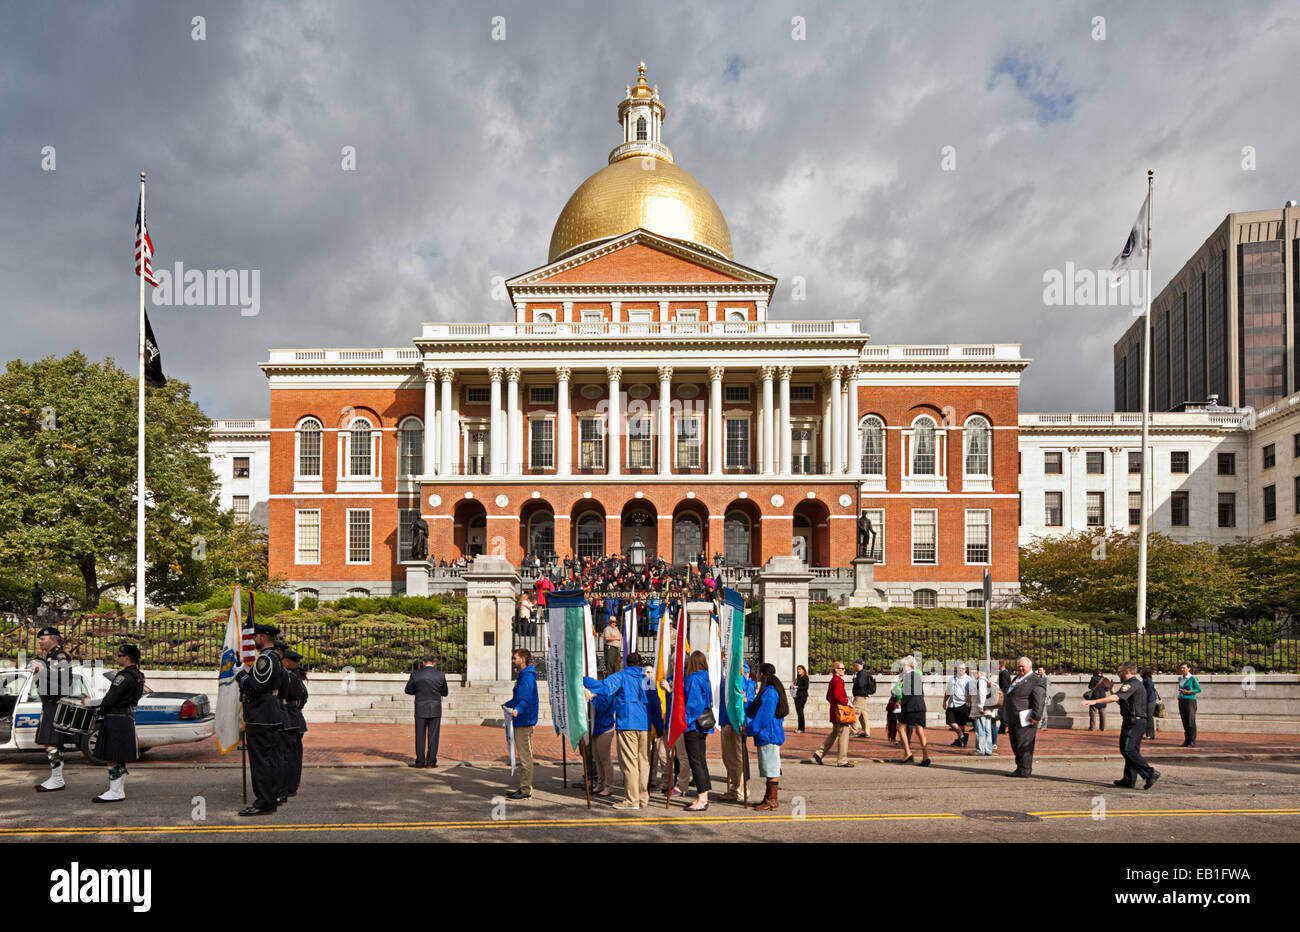 State House en Boston, Massachusetts Imagen De Stock